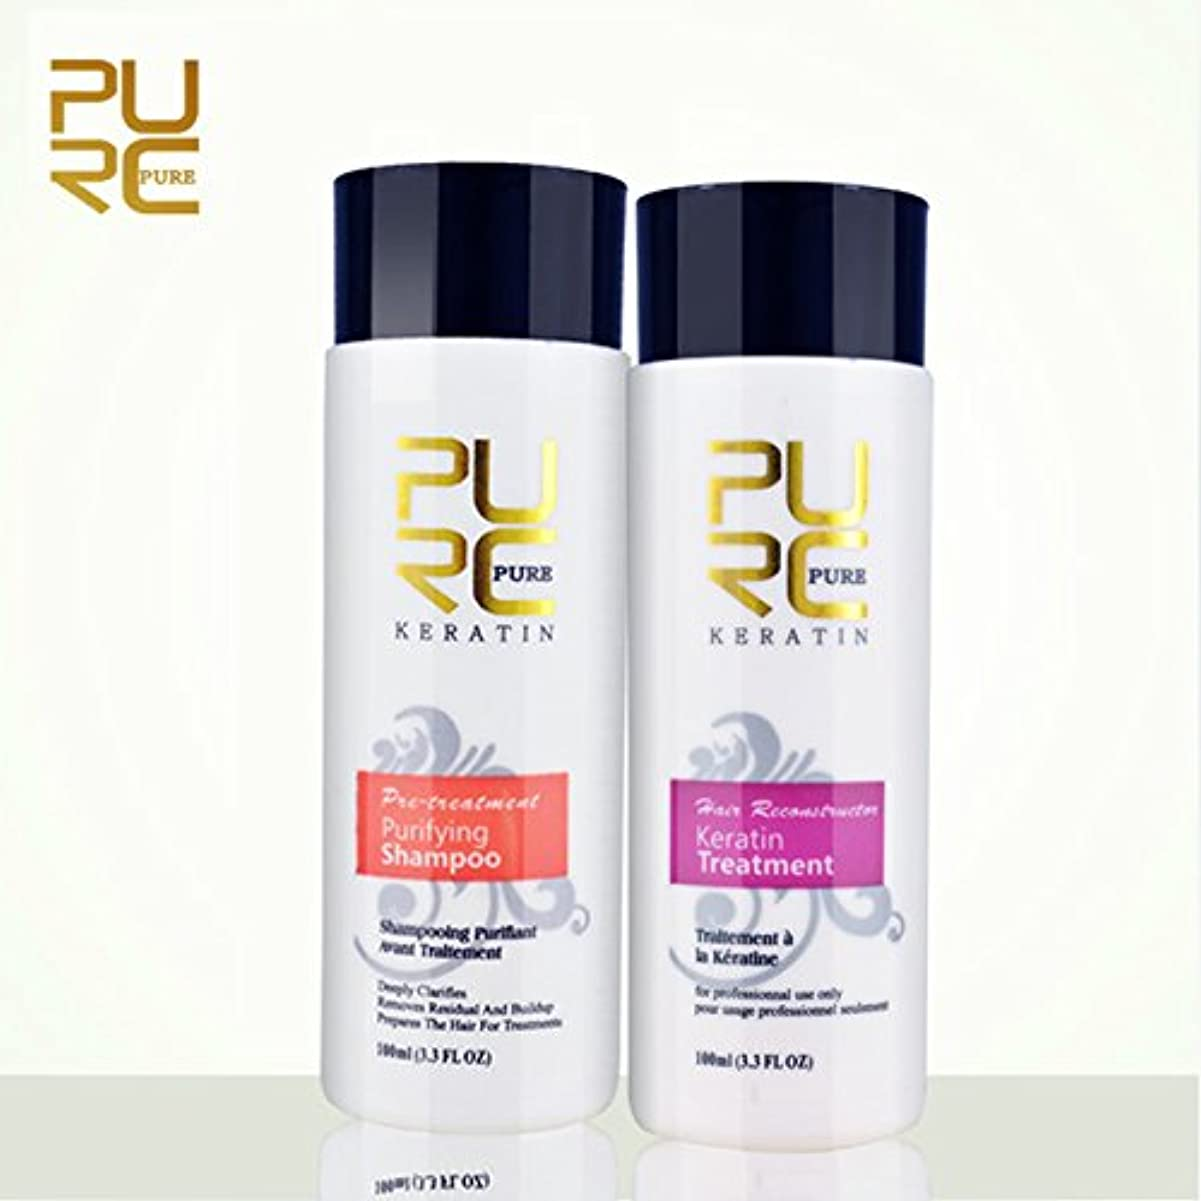 概要可能勘違いするSET of 2 - PURE Straightening hair Repair and straighten damage hair products Brazilian keratin treatment + purifying shampoo